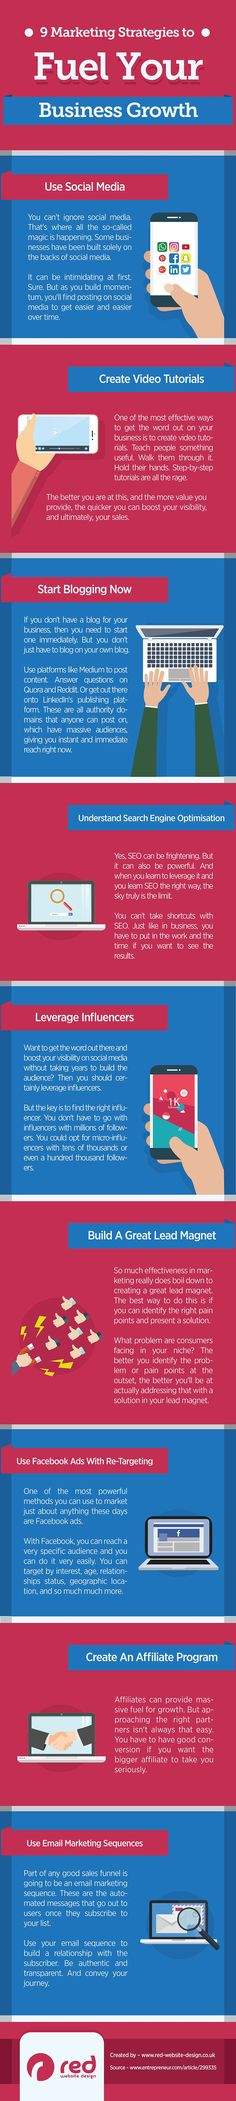 9 #Marketing Strategies for Explosive #Business Growth #Infographic